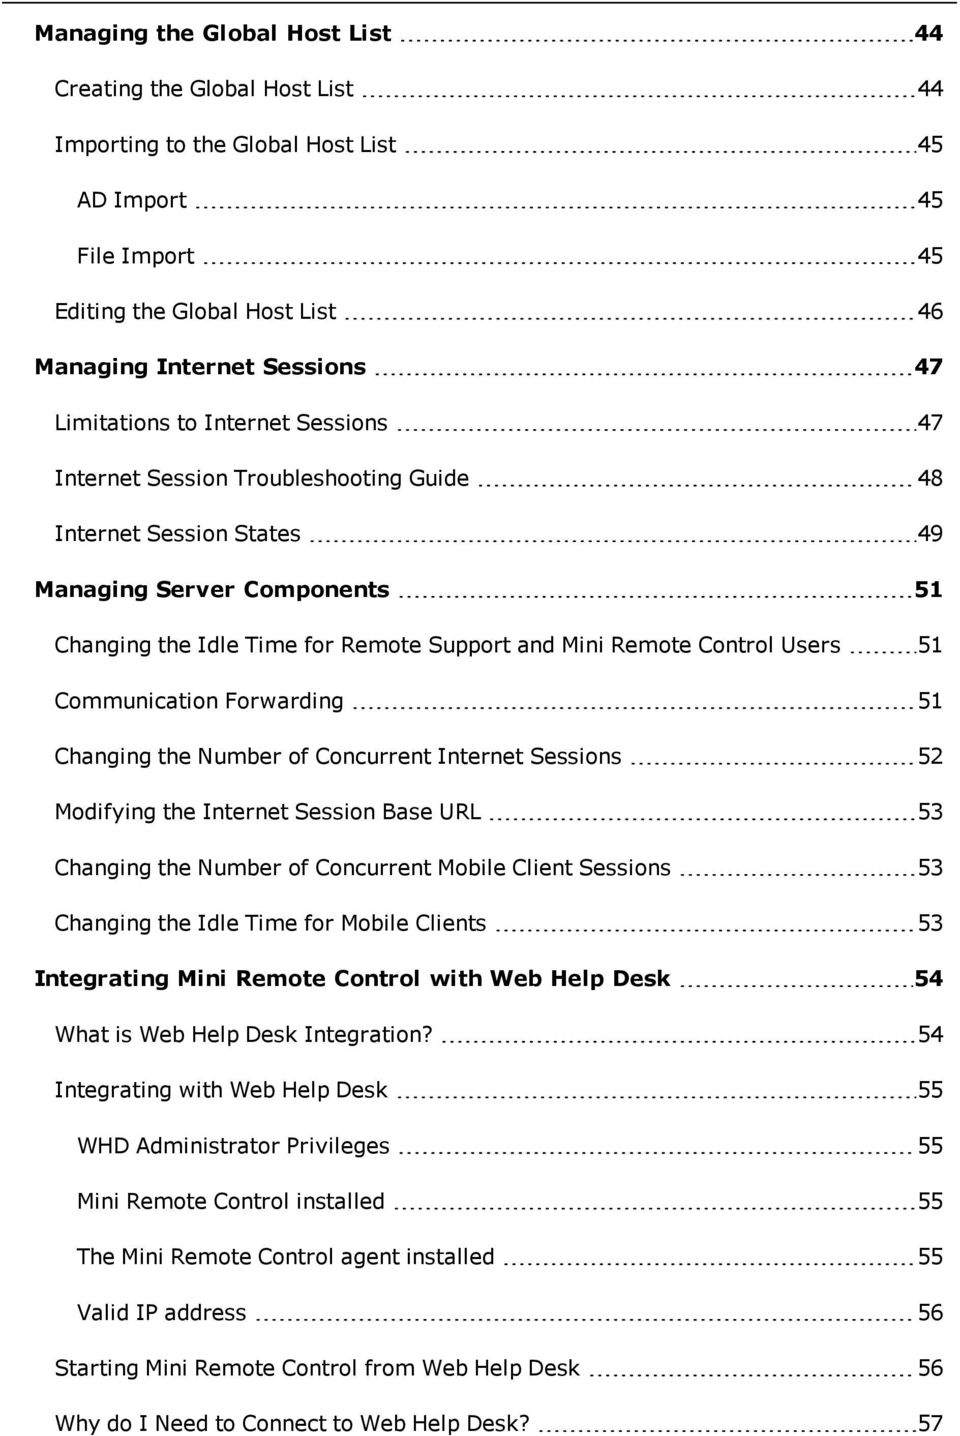 Control Users 51 Communication Forwarding 51 Changing the Number of Concurrent Internet Sessions 52 Modifying the Internet Session Base URL 53 Changing the Number of Concurrent Mobile Client Sessions